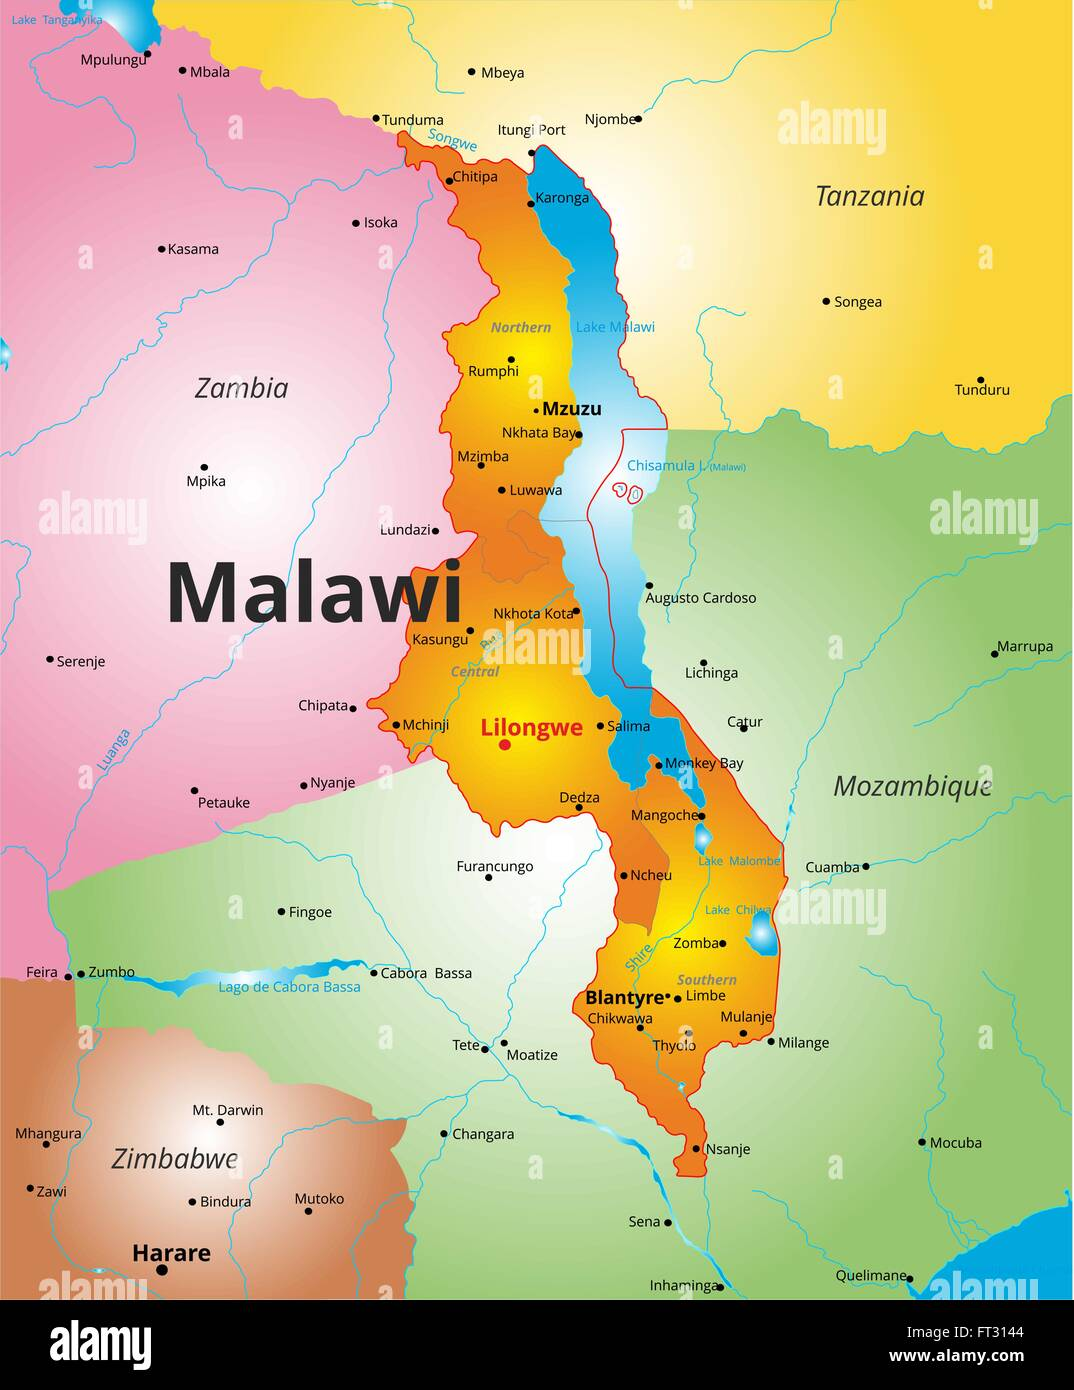 Color Map Of Malawi Country Stock Vector Art Illustration - Malawi map